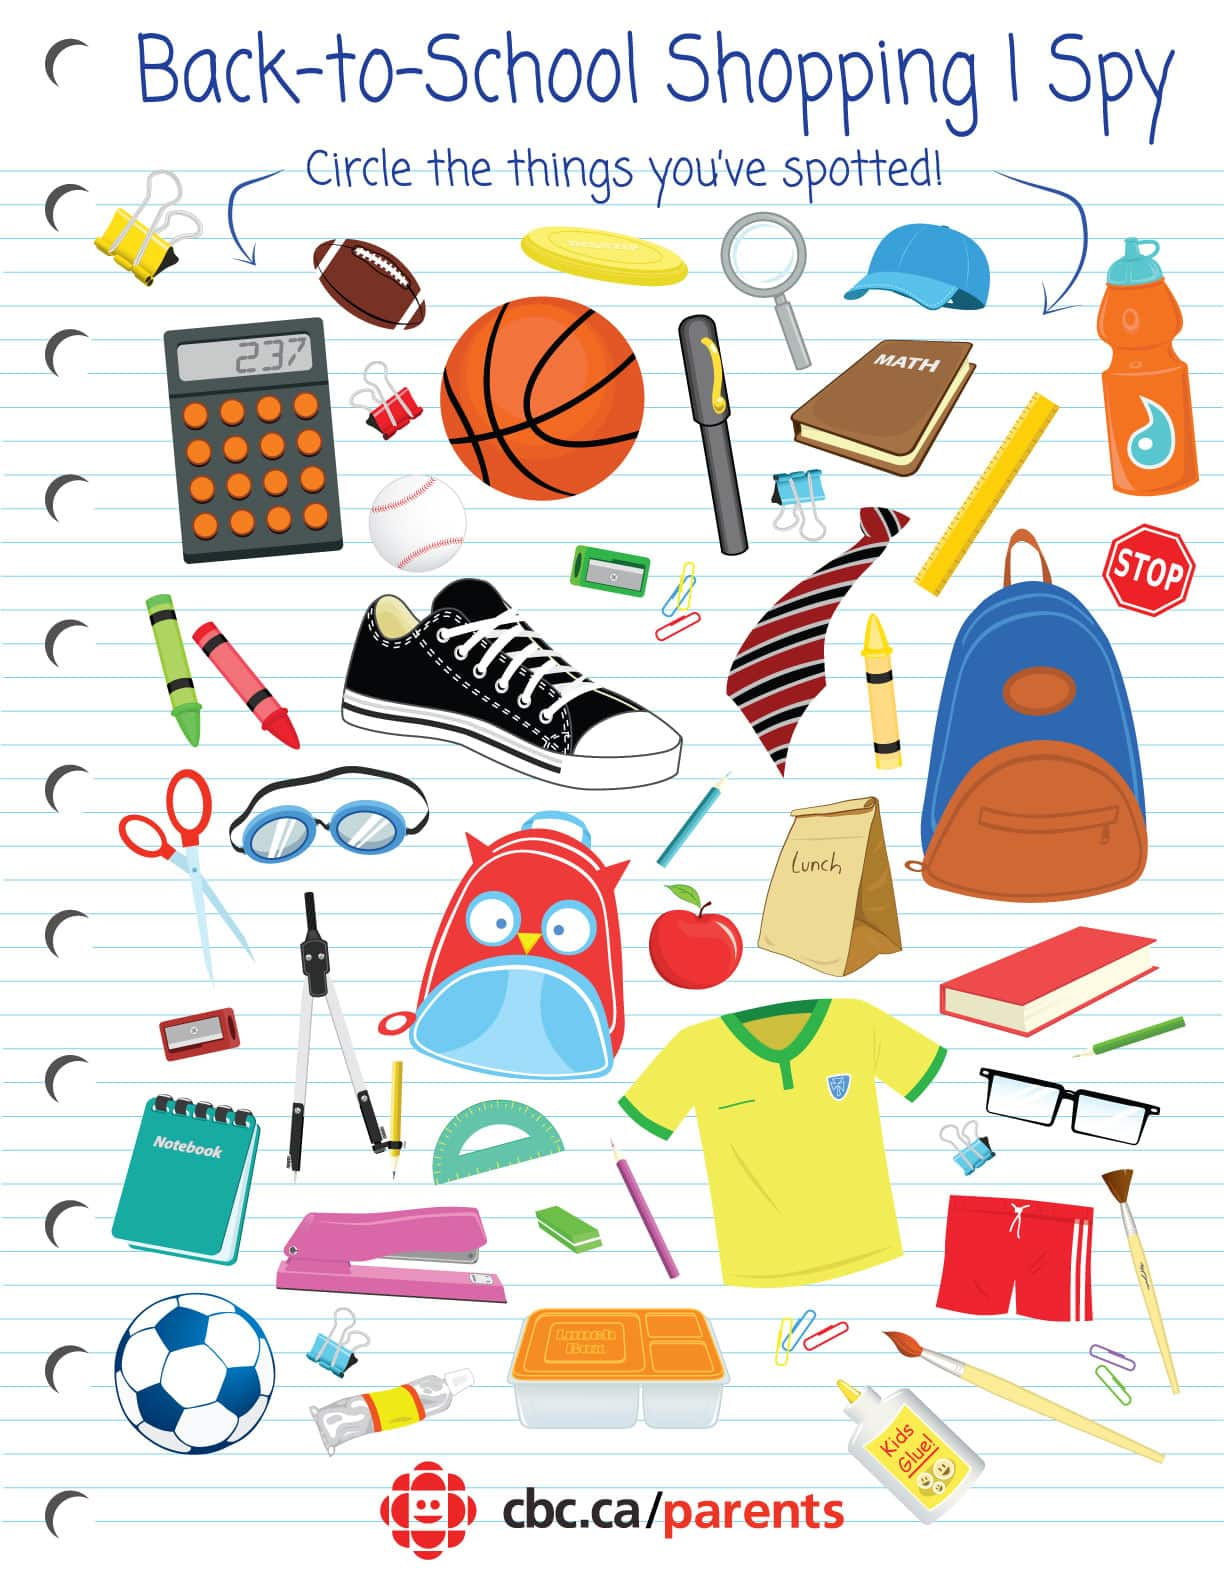 photo regarding I Spy Printable identified as Again-toward-College or university Purchasing I Spy Printable Match Participate in CBC